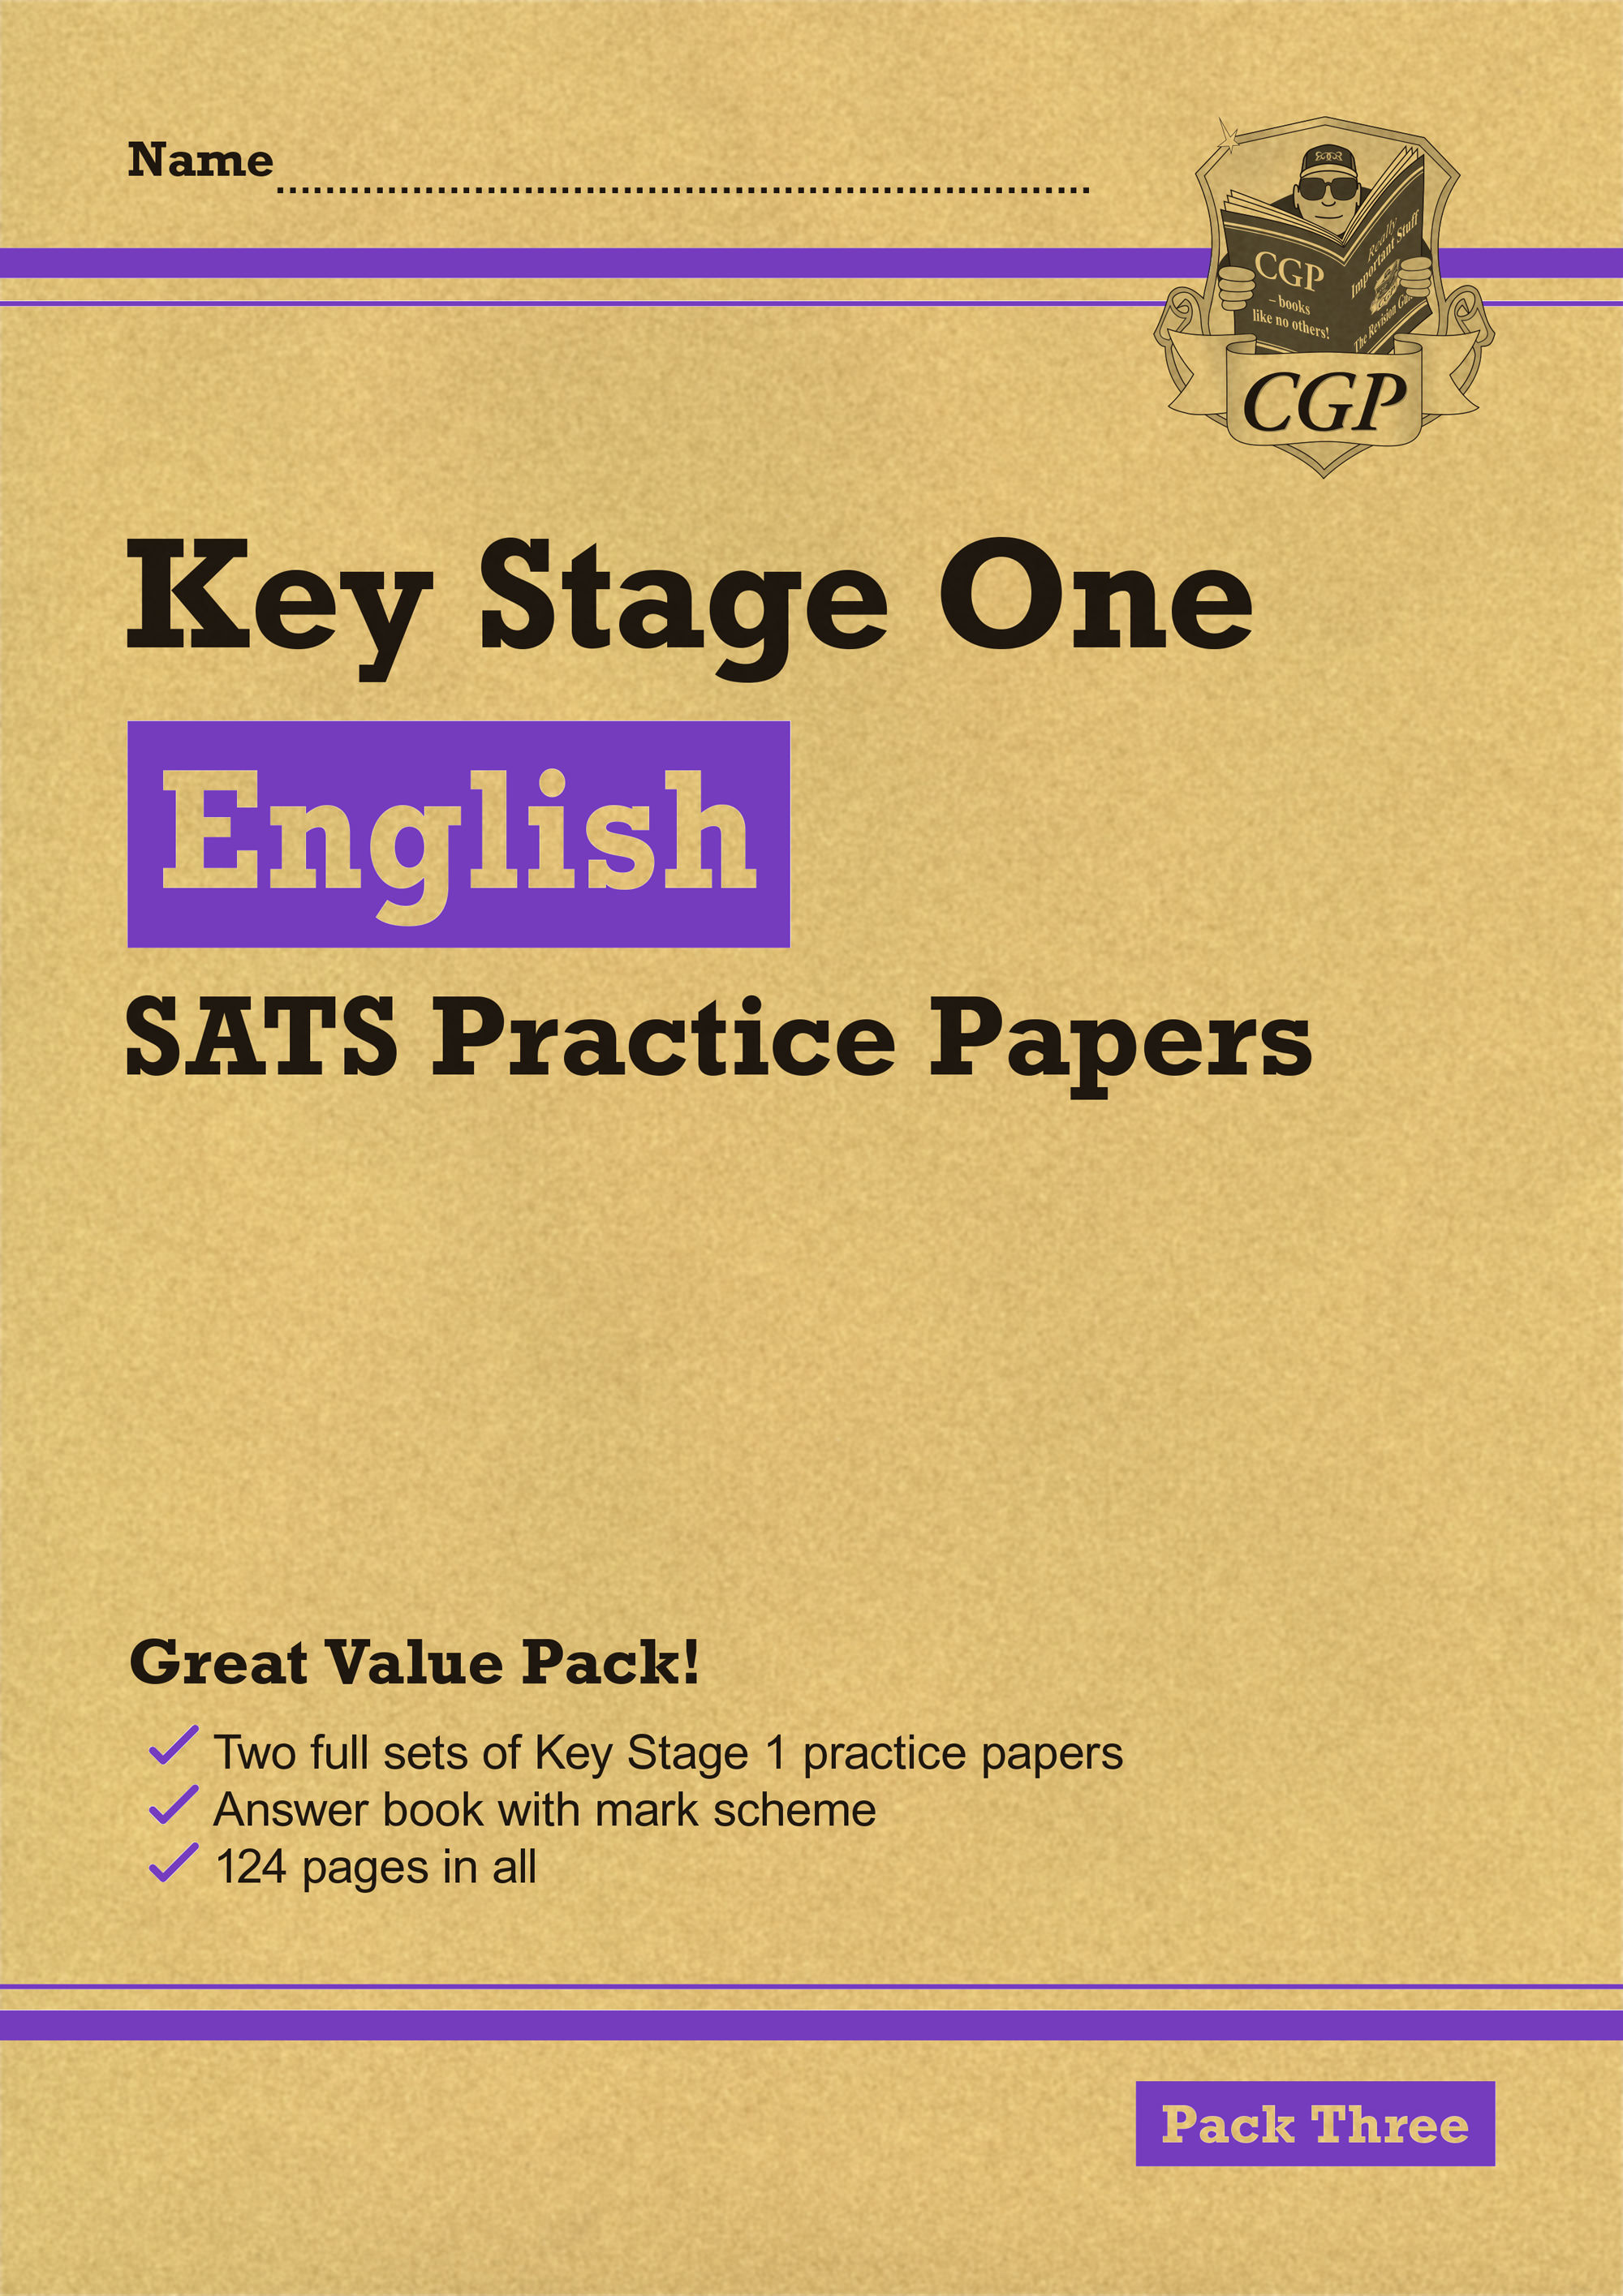 EHPP13 - KS1 English SATS Practice Papers: Pack 3 (for the 2021 tests)